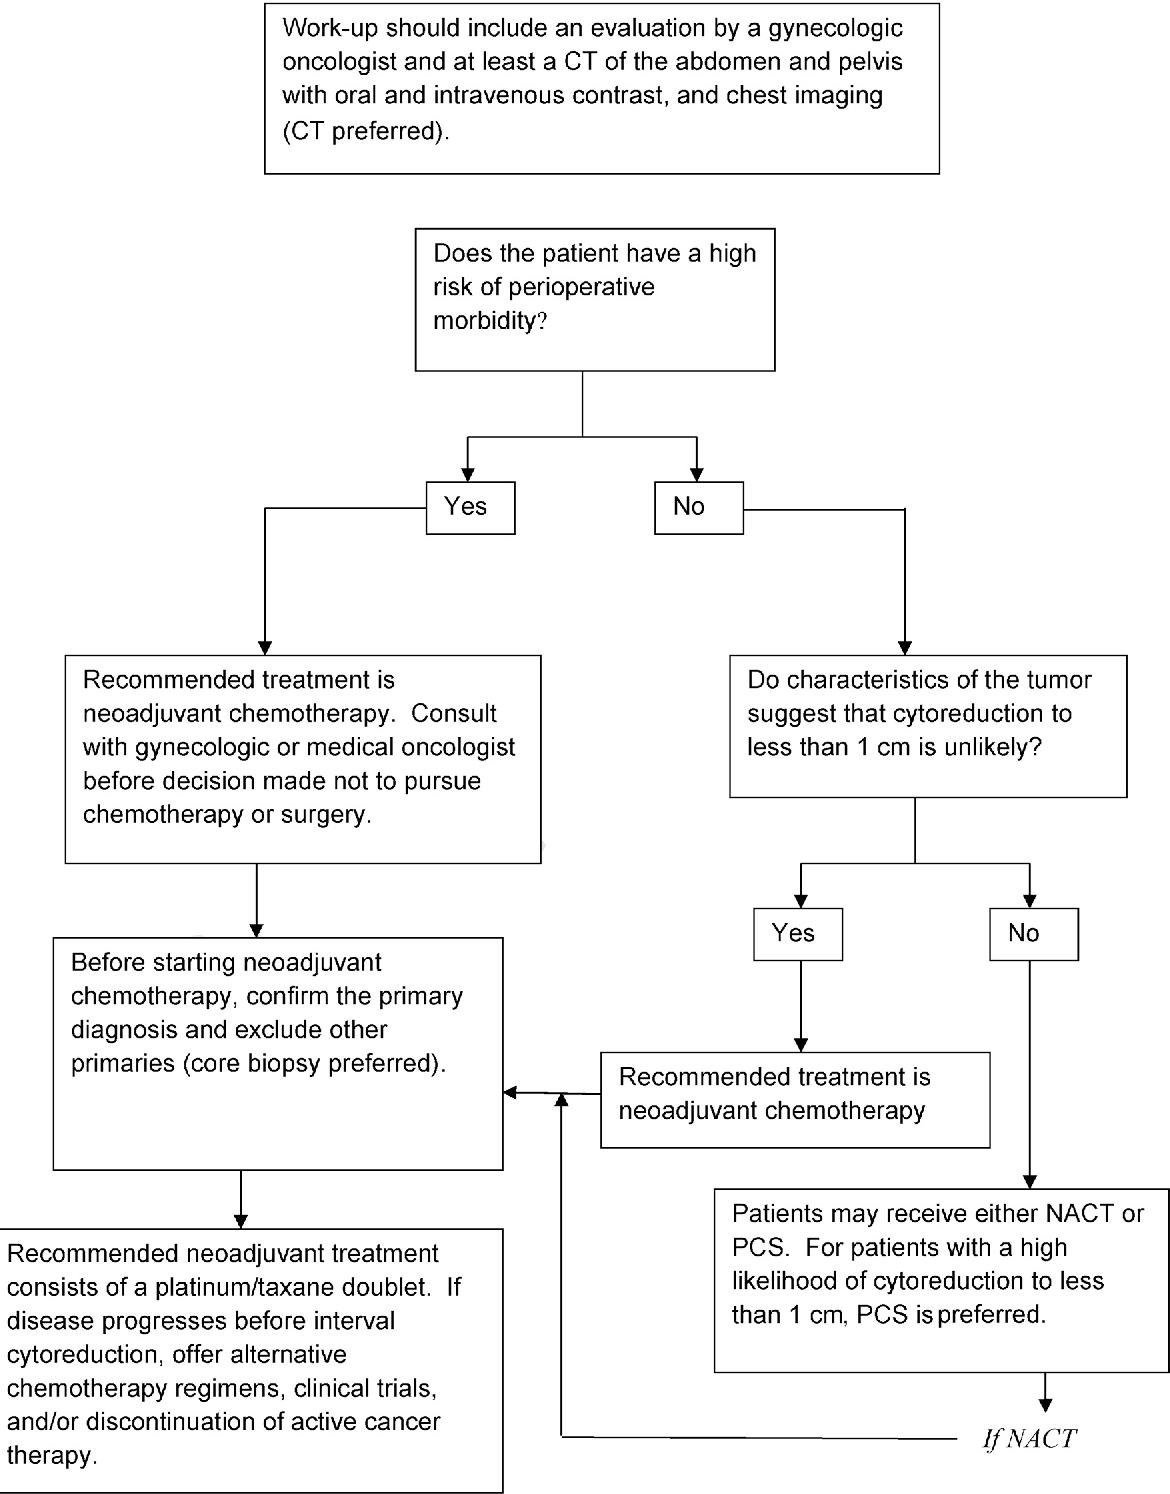 Figure 1 From Neoadjuvant Chemotherapy For Newly Diagnosed Advanced Ovarian Cancer Society Of Gynecologic Oncology And American Society Of Clinical Oncology Clinical Practice Guideline Semantic Scholar